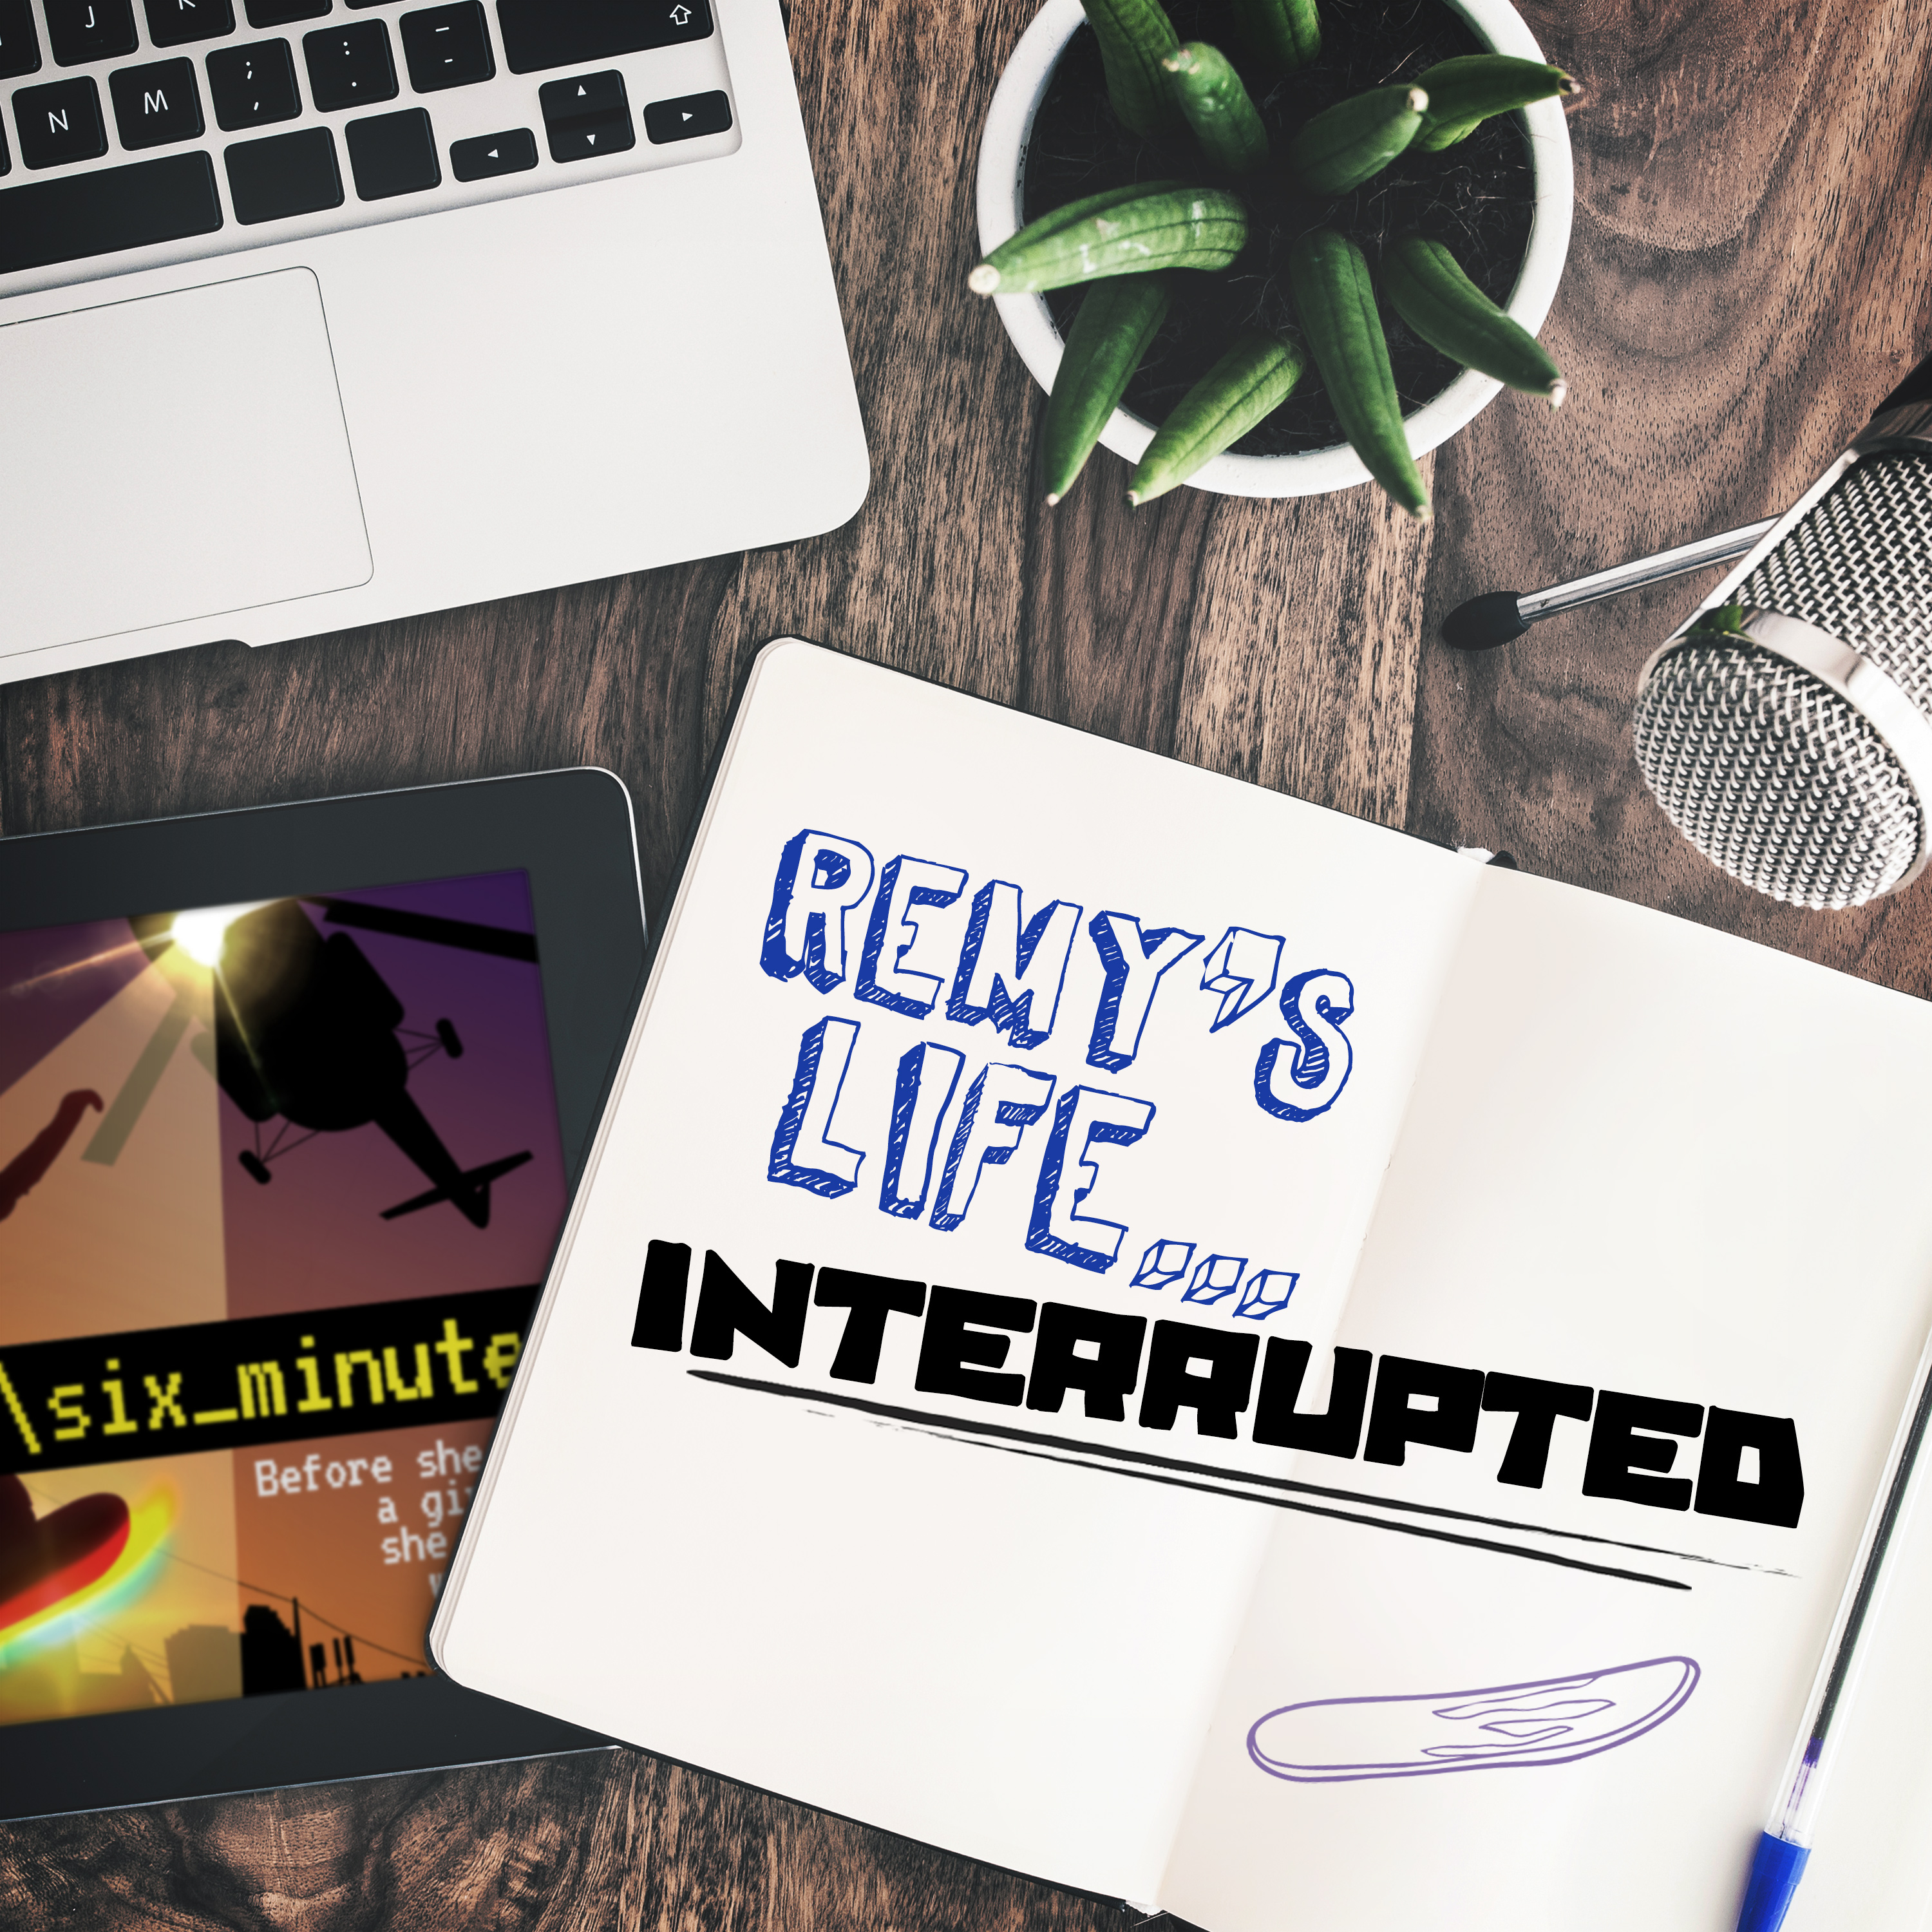 Remy's Life Interrupted: EP73